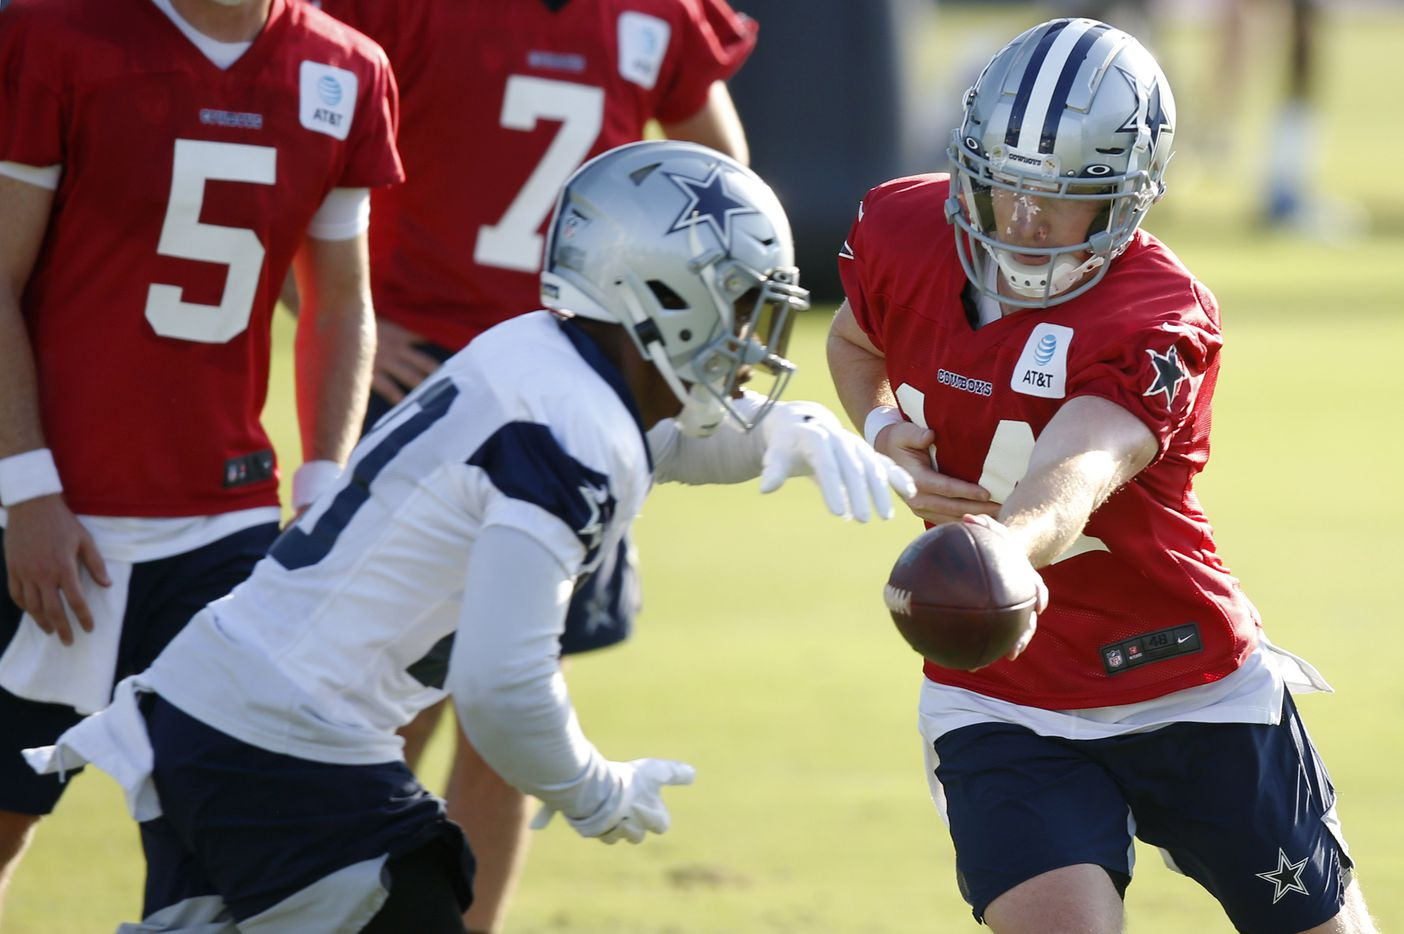 Dallas Cowboys quarterback Andy Dalton (14) hands the ball off to Dallas Cowboys running back Tony Pollard (20) during the first day of training camp at Dallas Cowboys headquarters at The Star in Frisco, Texas on Friday, August 14, 2020. (Vernon Bryant/The Dallas Morning News)